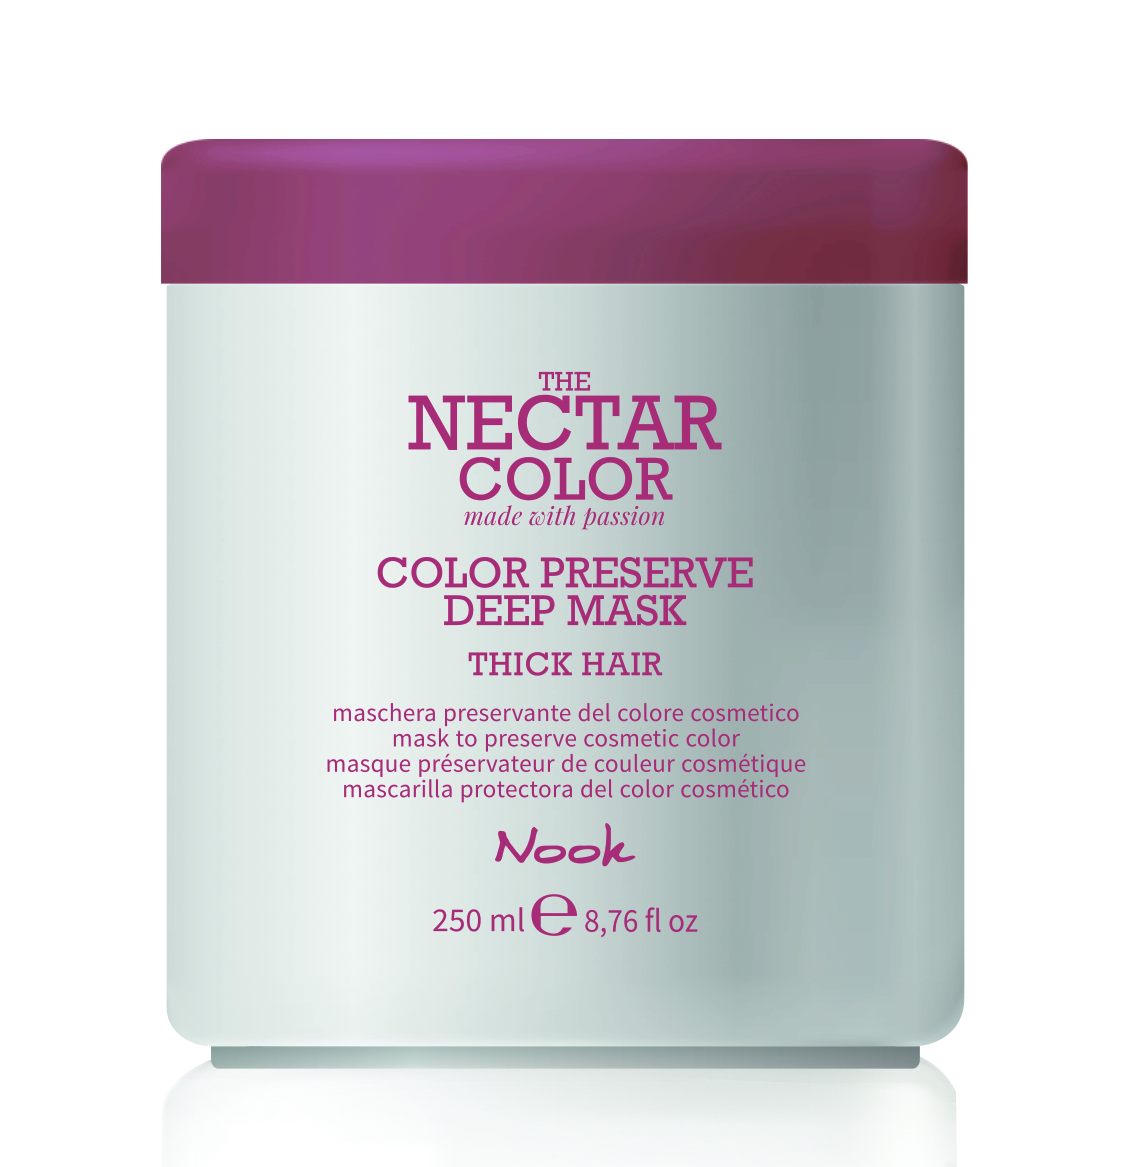 NOOK Маска для ухода за жесткими окрашенными волосами / Color Preserve Deep Mask - Thick Hair to preserve cosmetic color 250 мл.